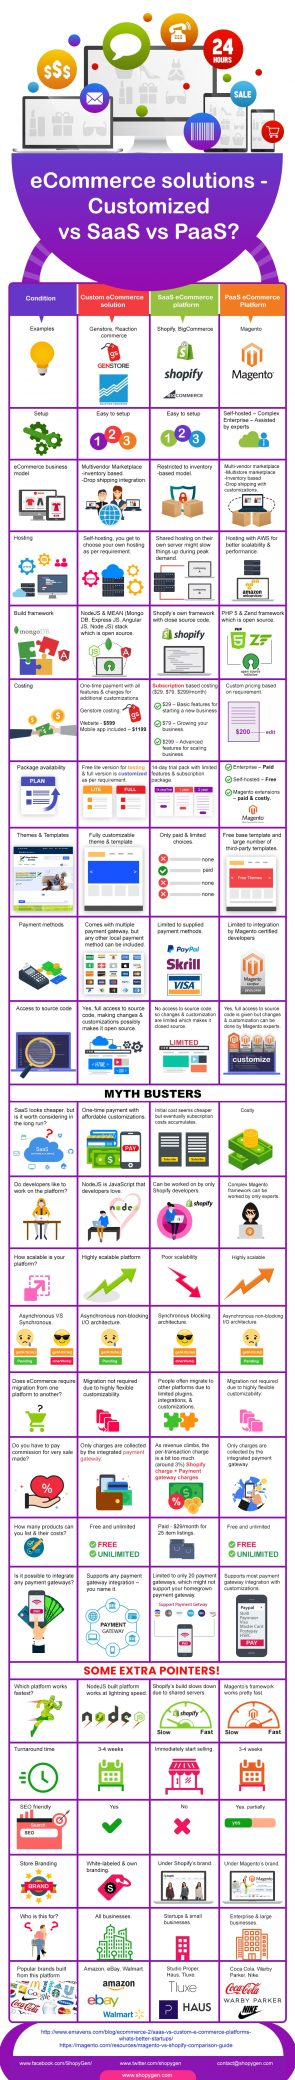 Why a Customized eCommerce Solution Can Be Better? [Infographic]